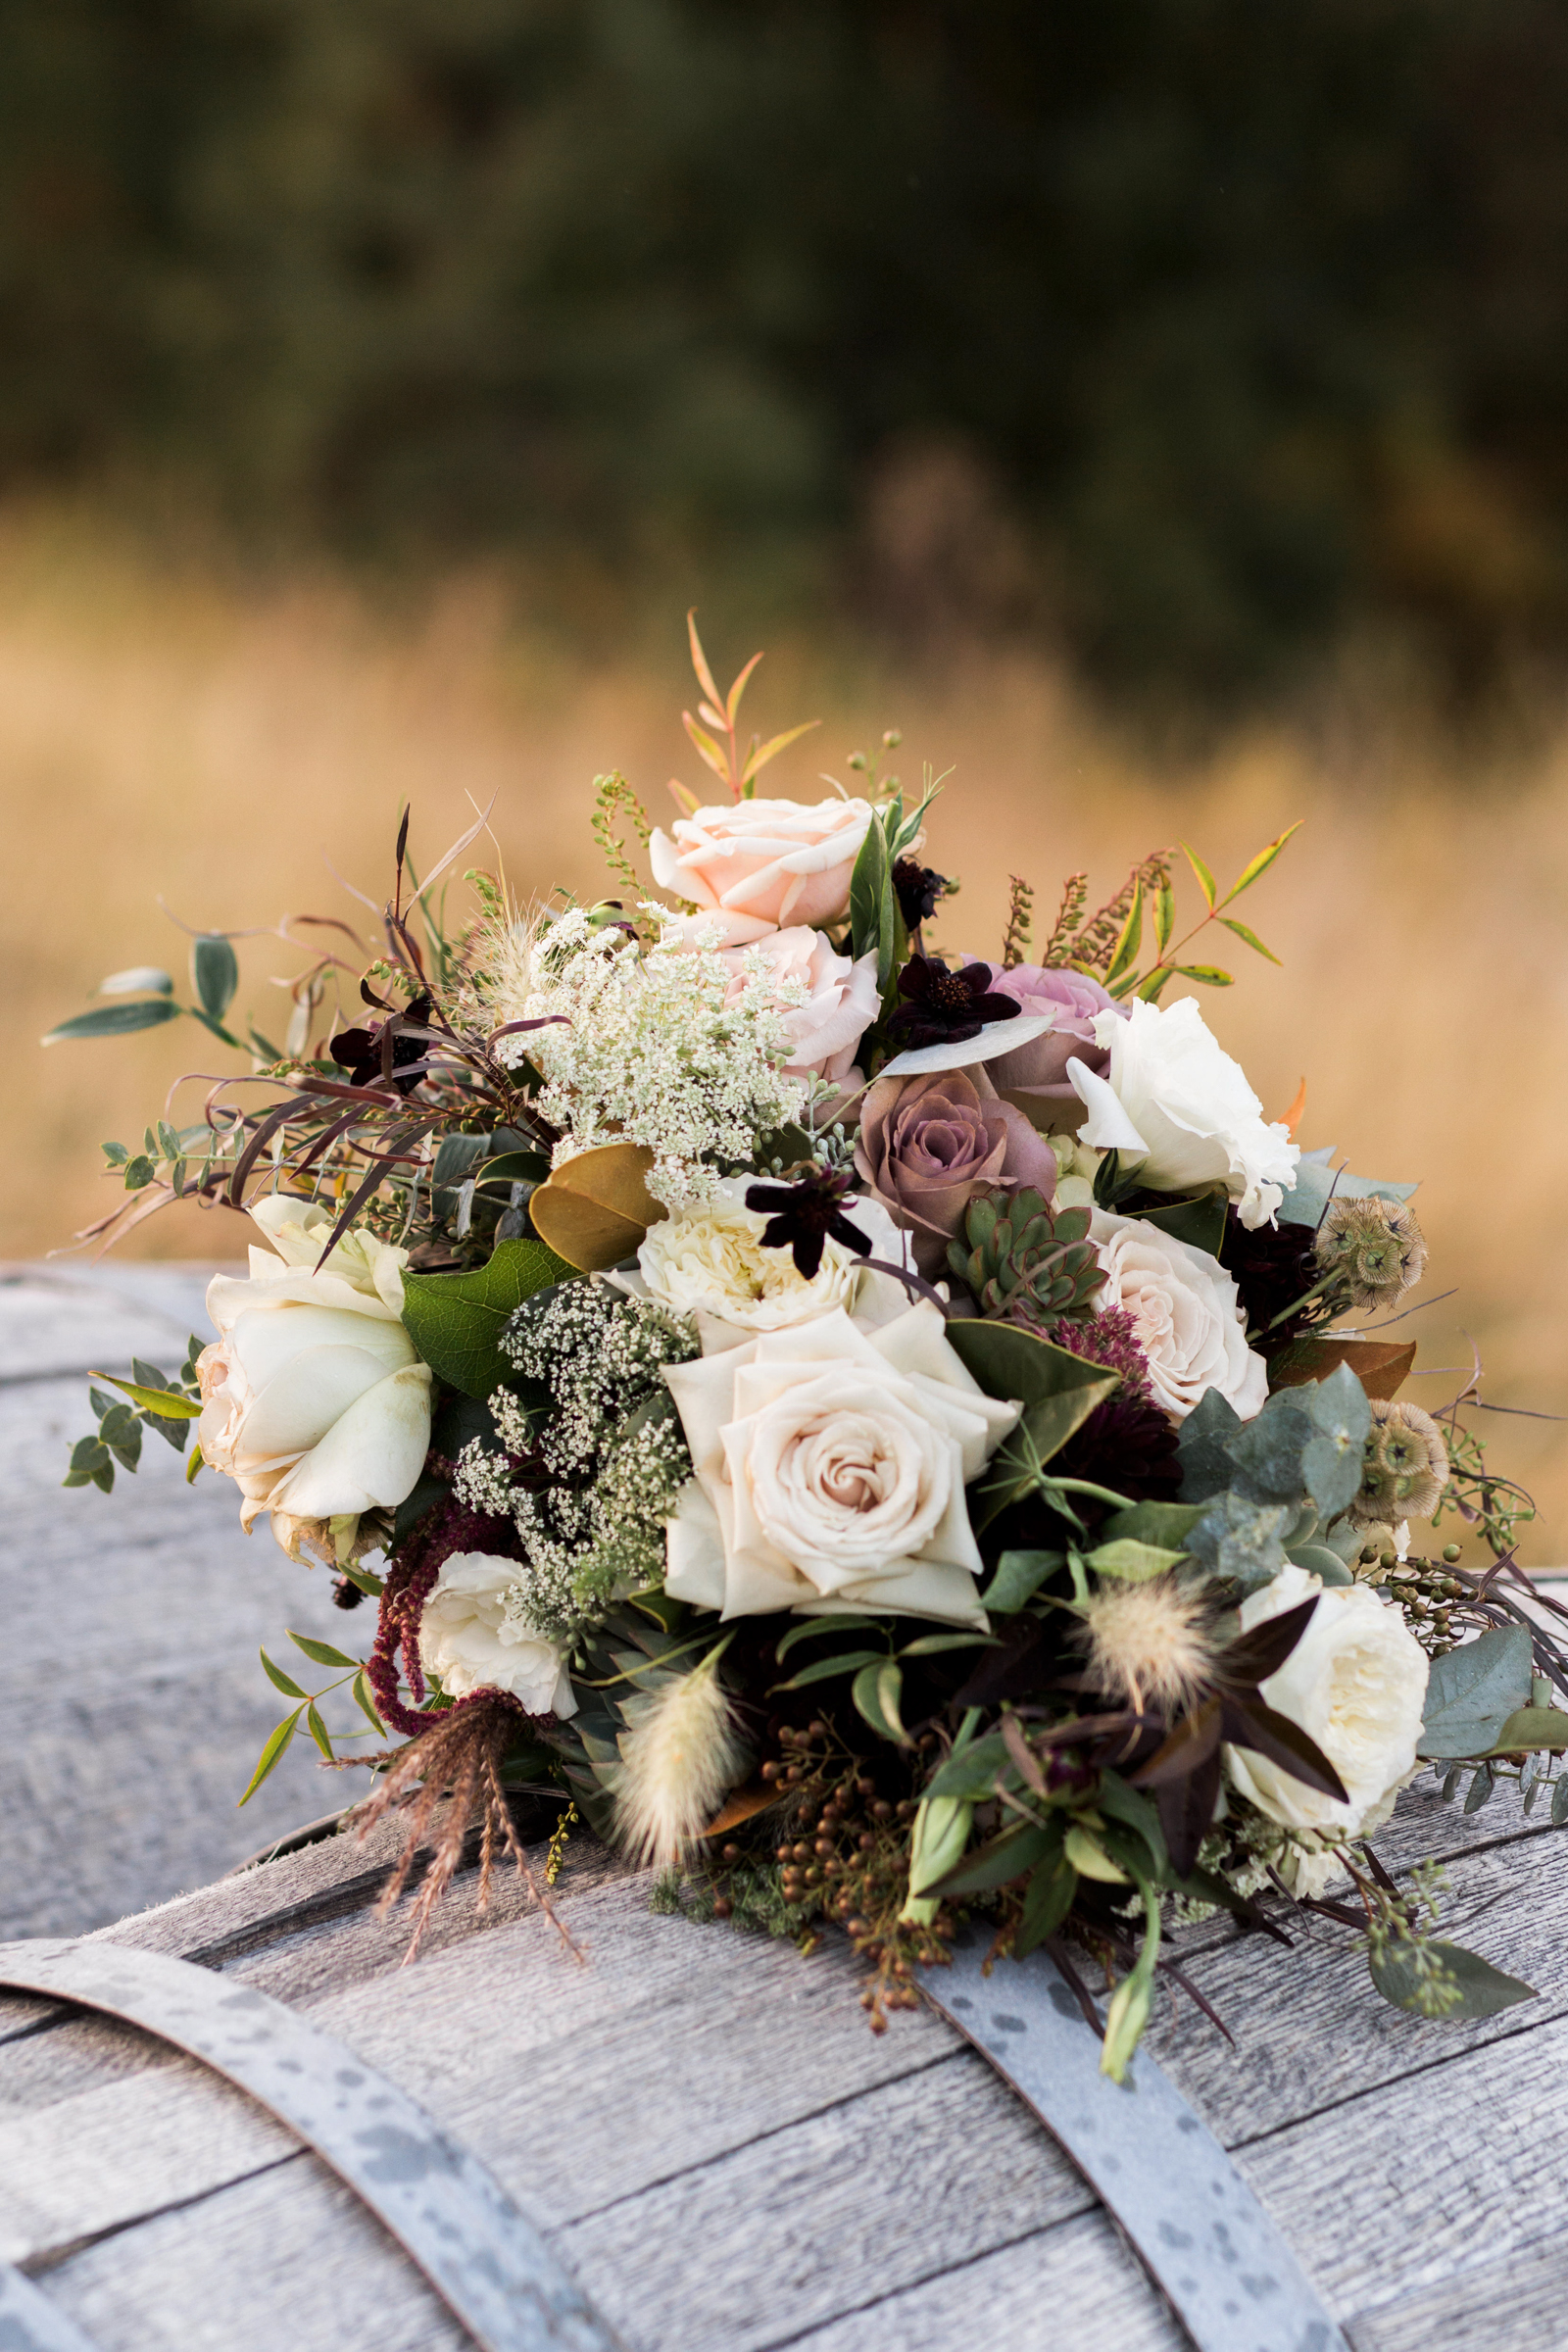 Pink rose bouquet with dried flowers - photo by Stephanie Cristalli Photography